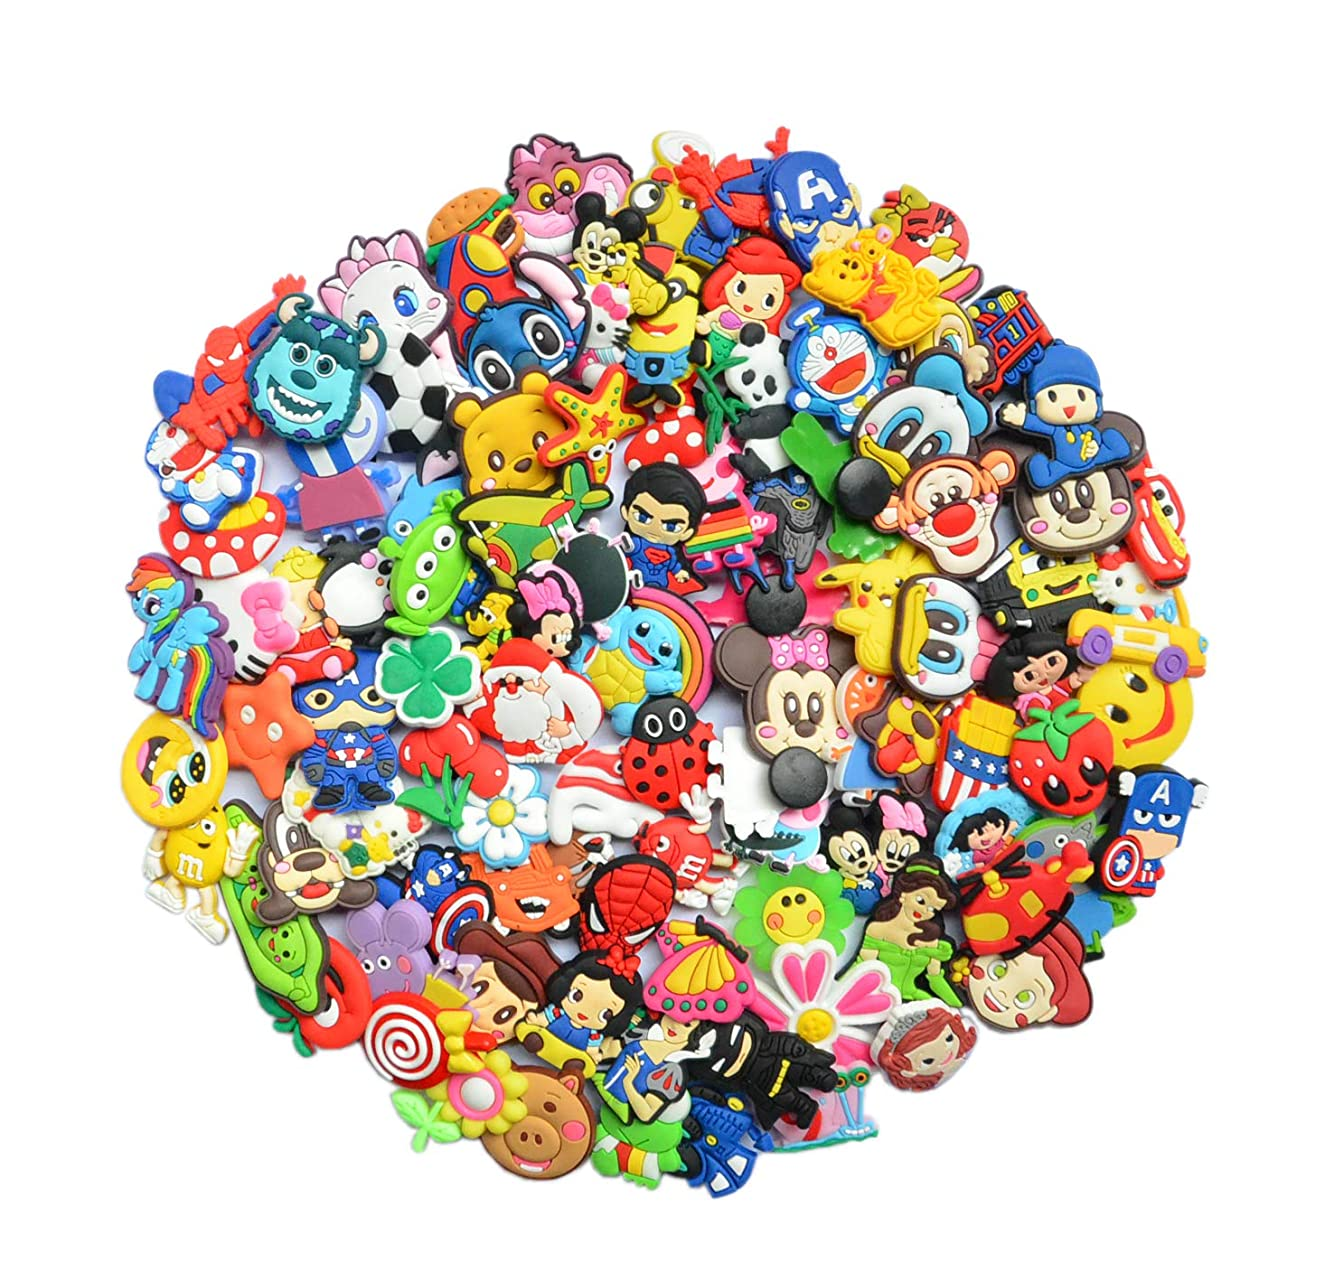 YAOYAO Different 100 Pcs PVC Shoe Charms for Croc & Jibbitz Bands Bracelet Wristband for The Beach Camping